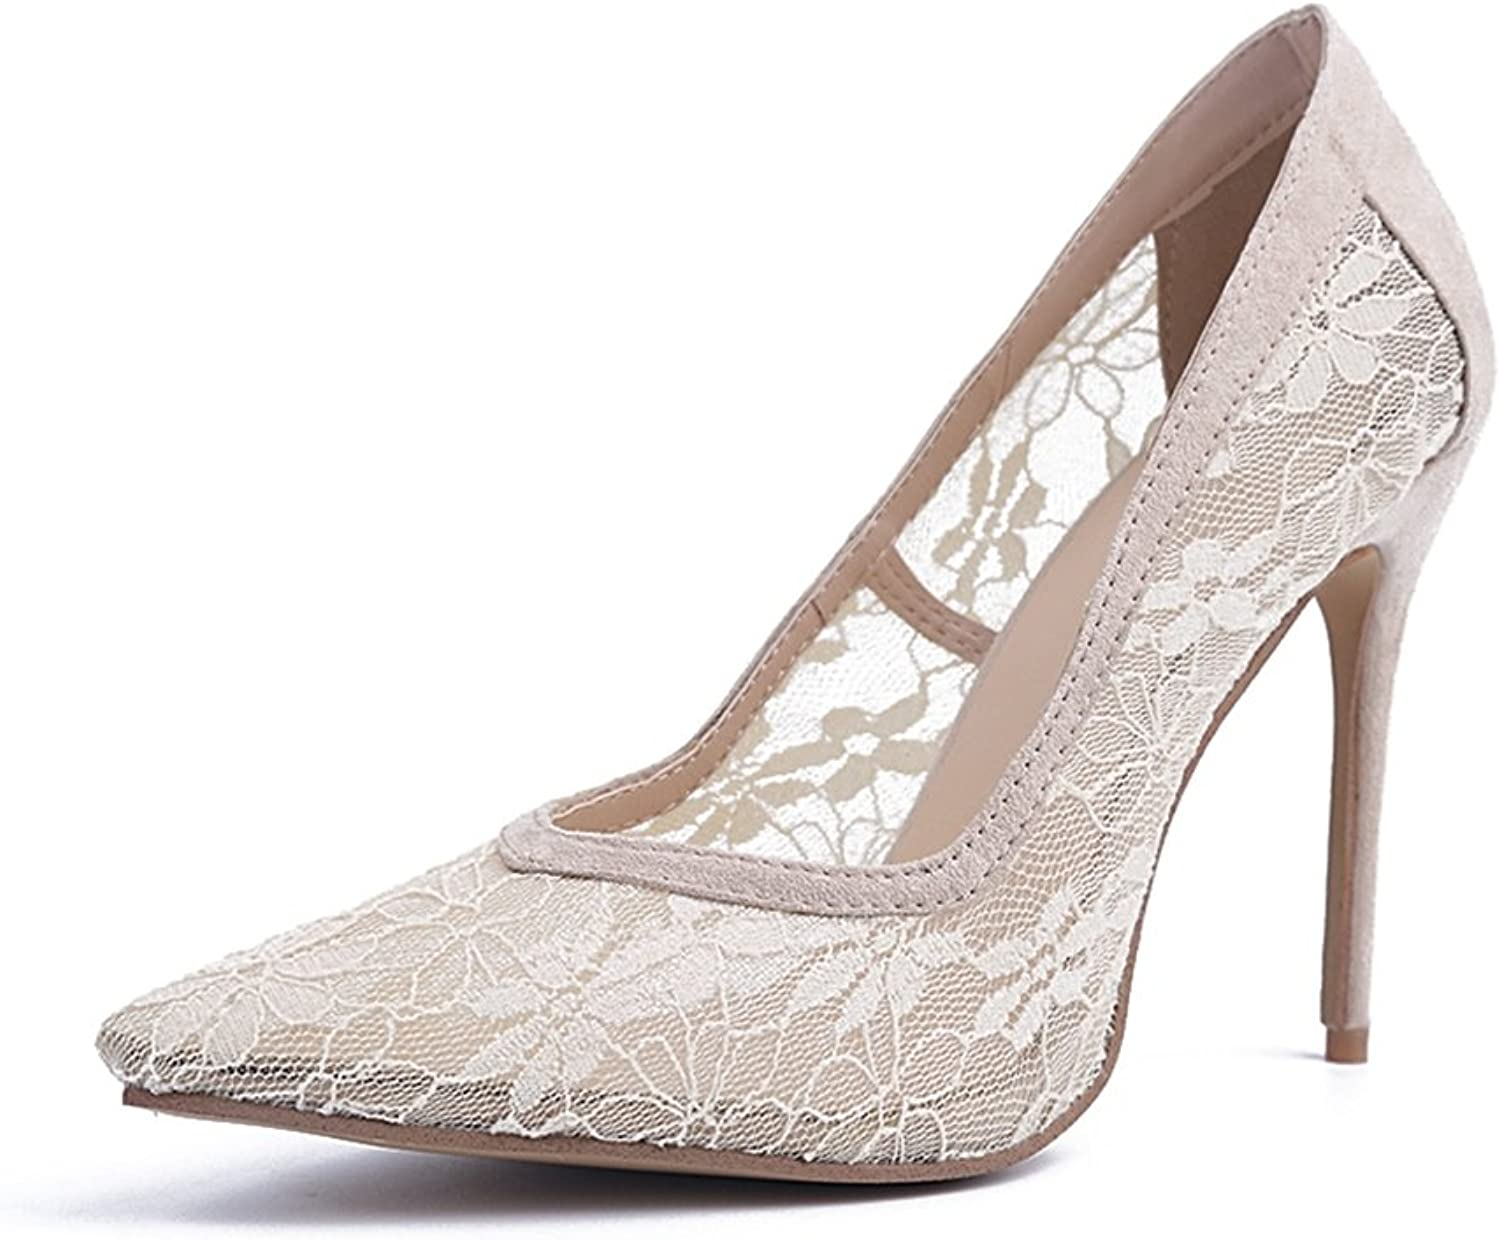 TDA Women's MA04142 Elegant Beige Lace Floral Pointed Toe Dress Pumps